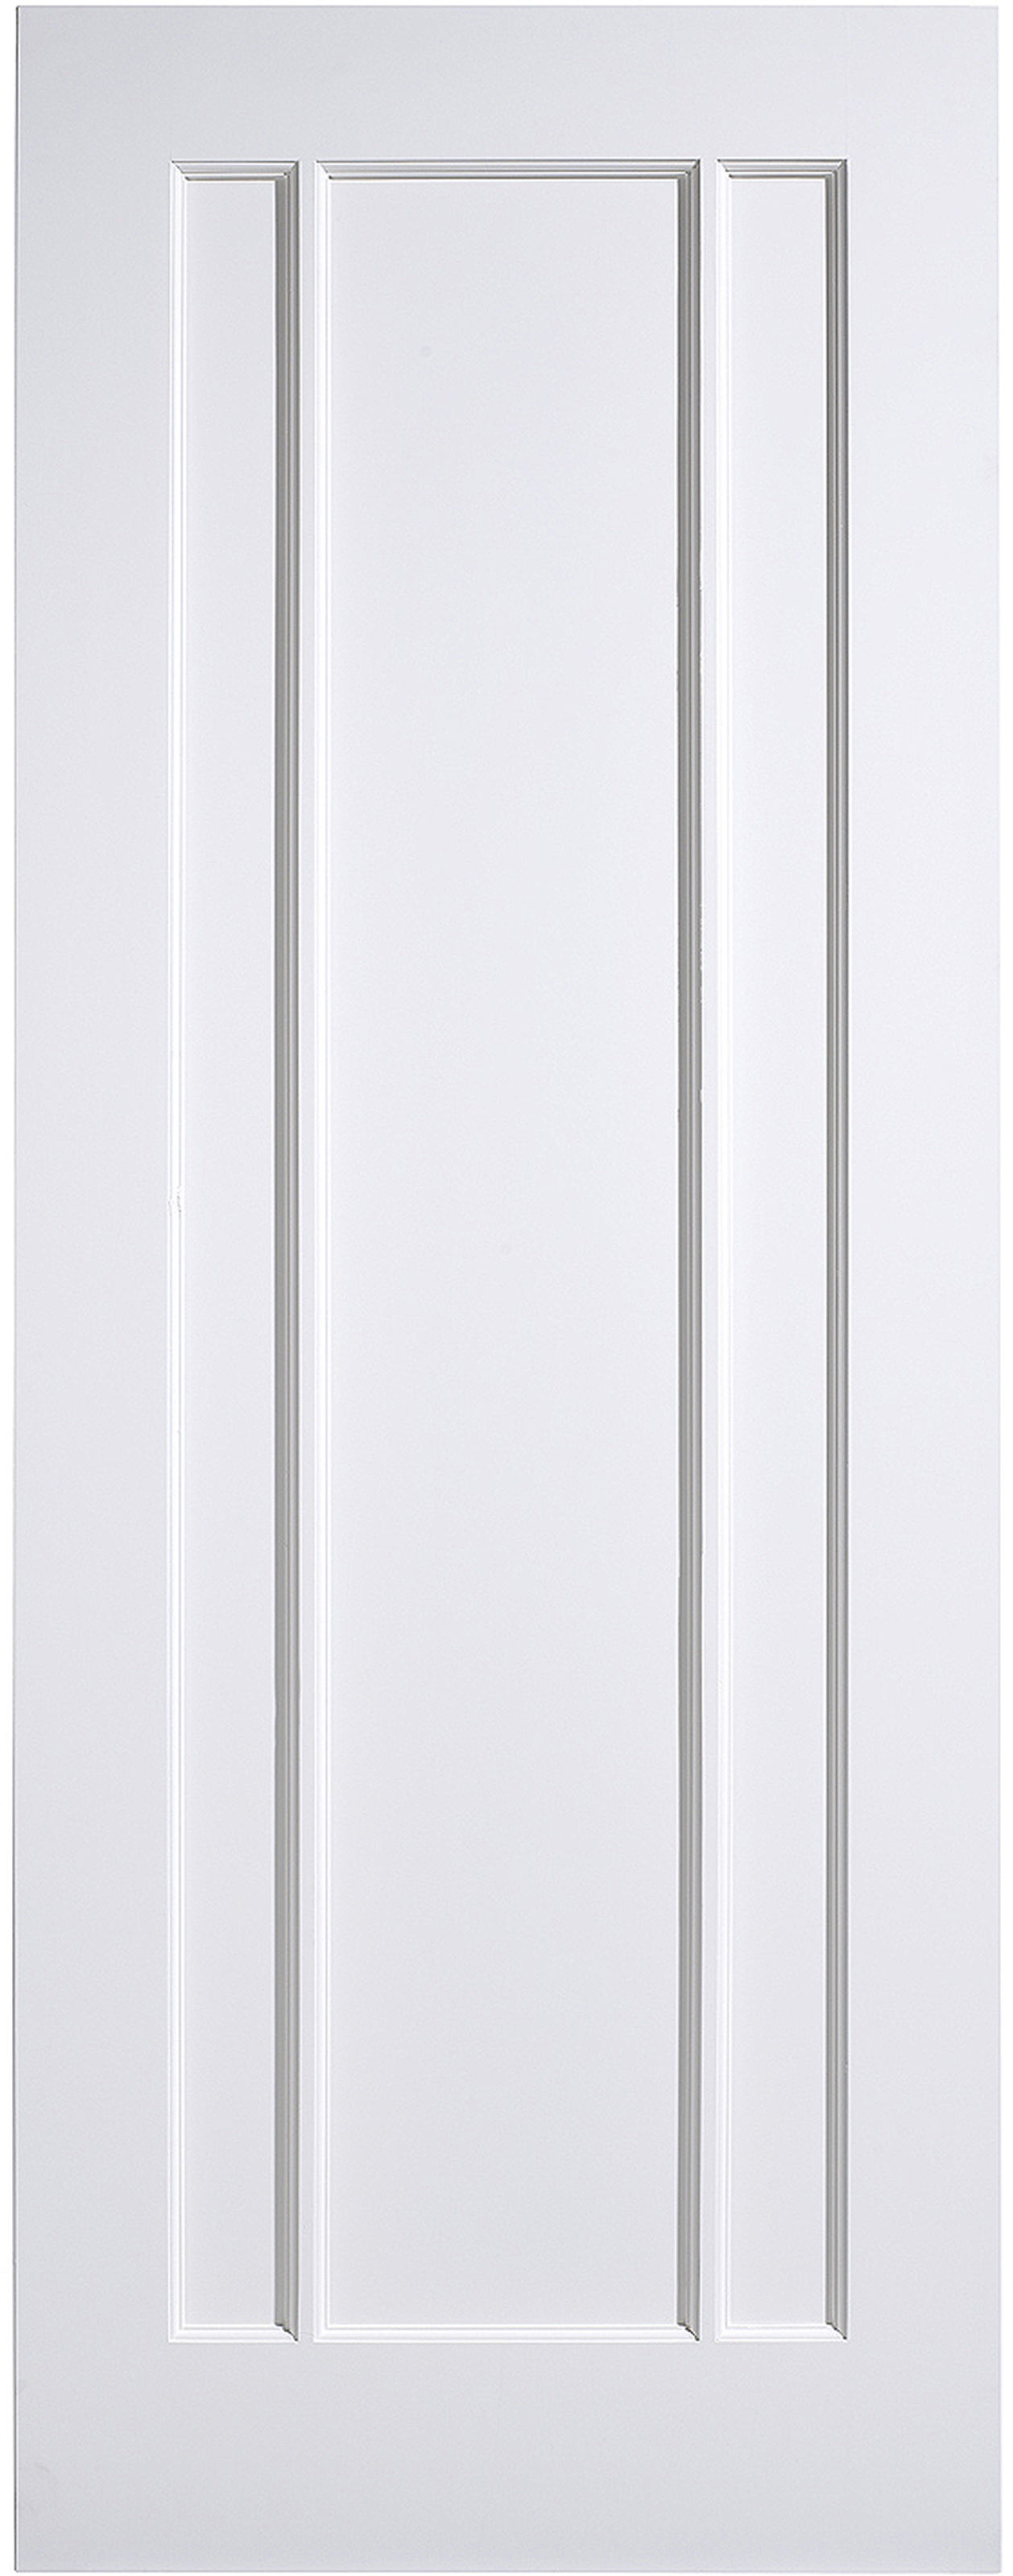 Lincoln White Primed Lpd Fire Door